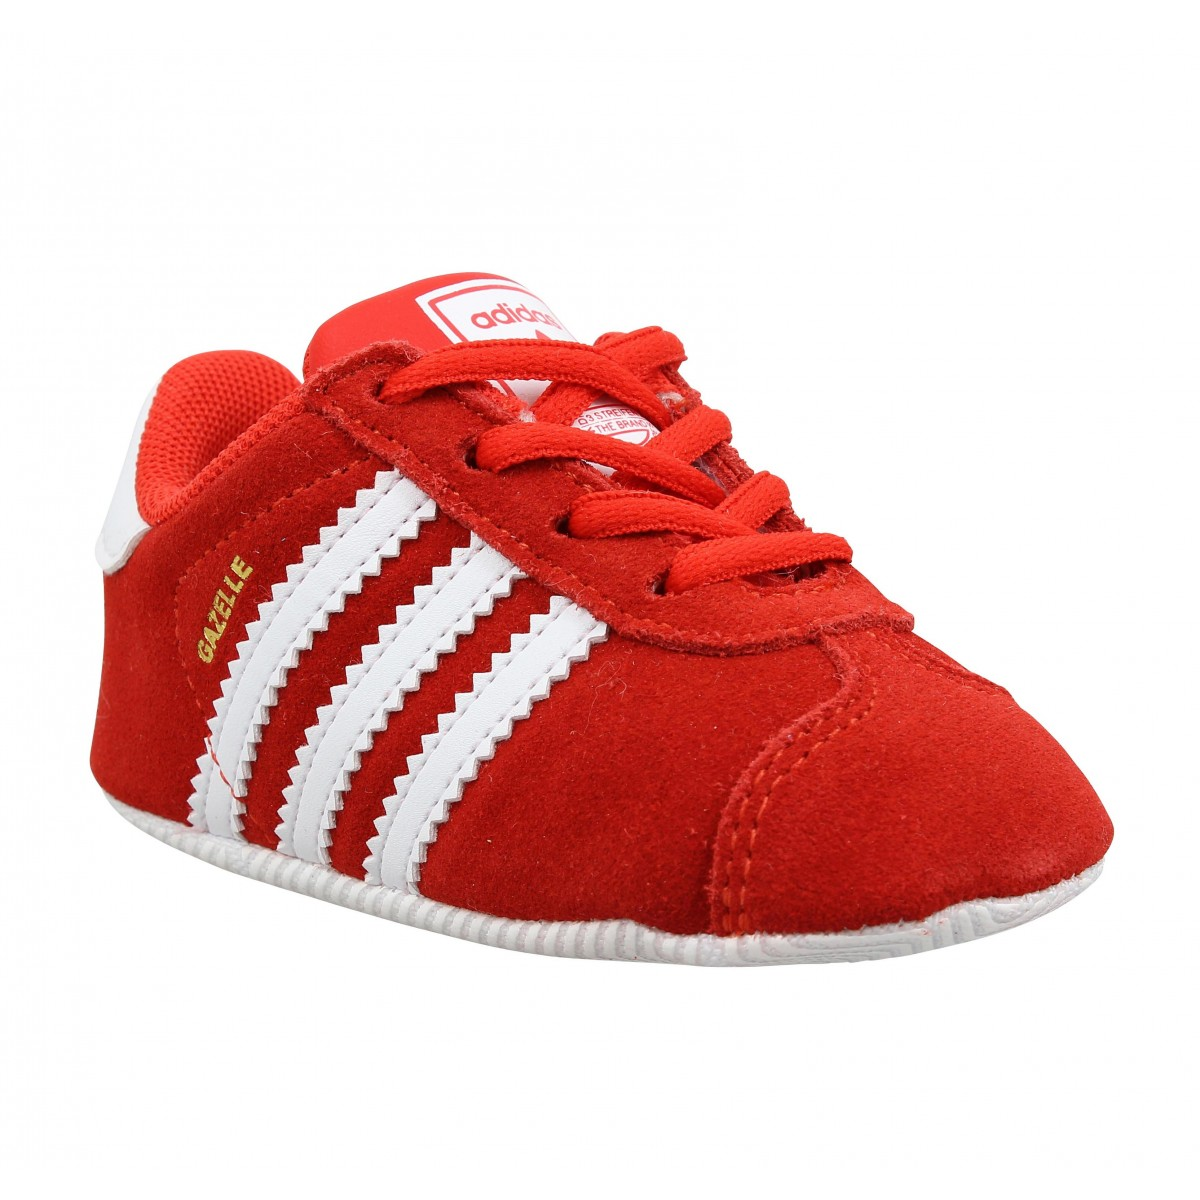 Adidas Enfant Gazelle Crib-17-rouge